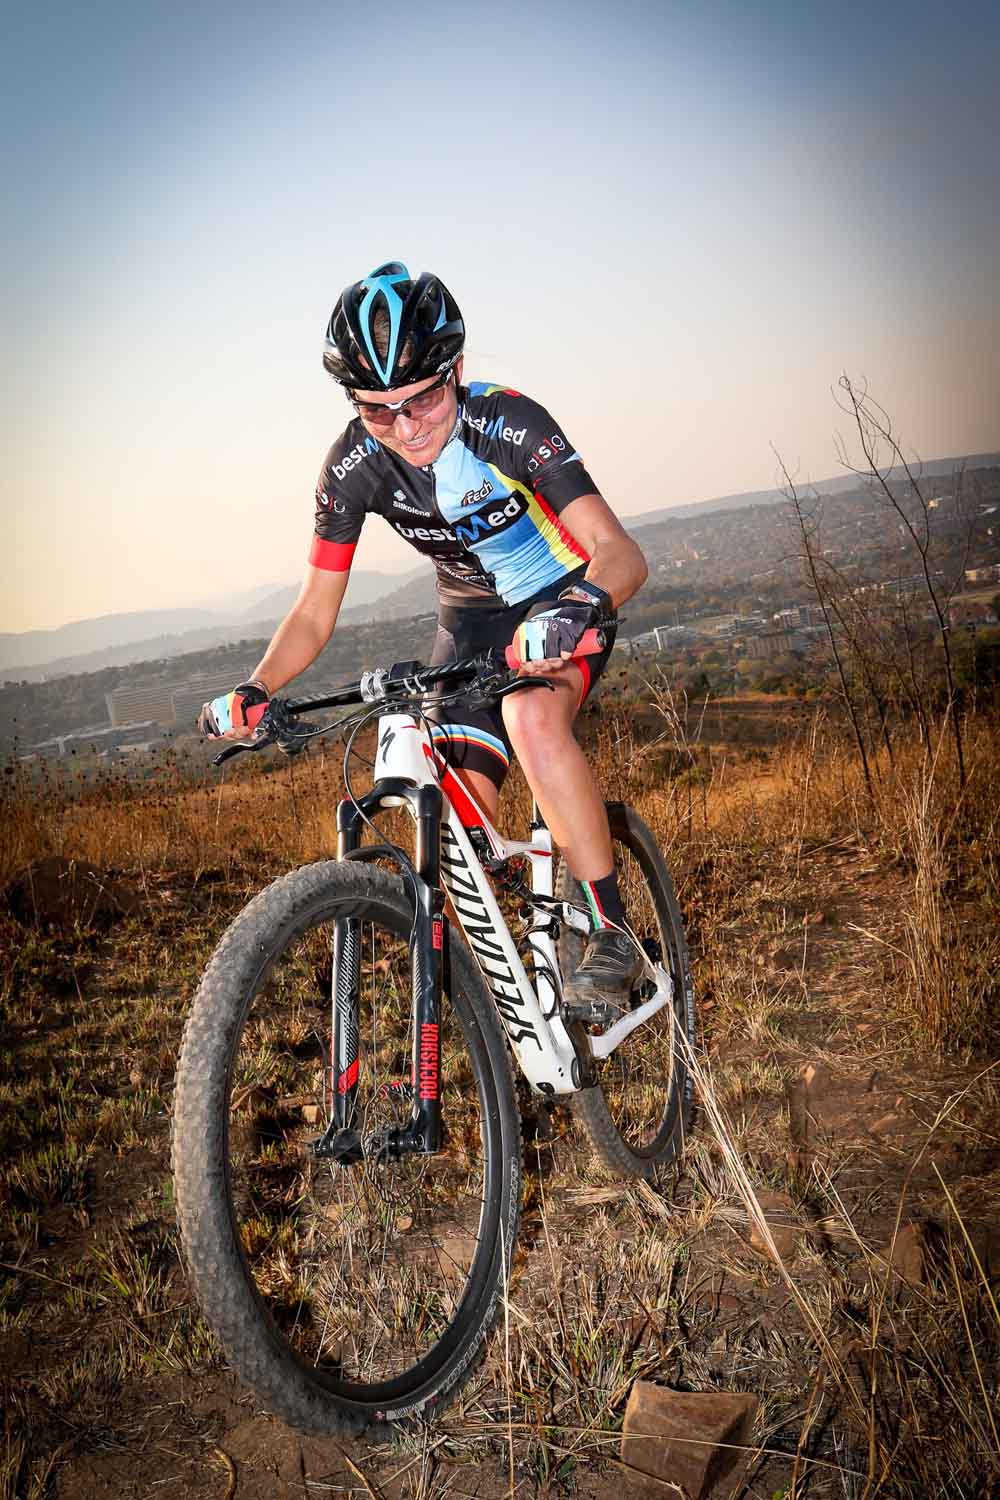 Team Bestmed-ASG members will make their presence known at one of South Africa's toughest mountain bike stage races, the Cape Pioneer Trek, which starts near Mossel Bay this coming weekend.